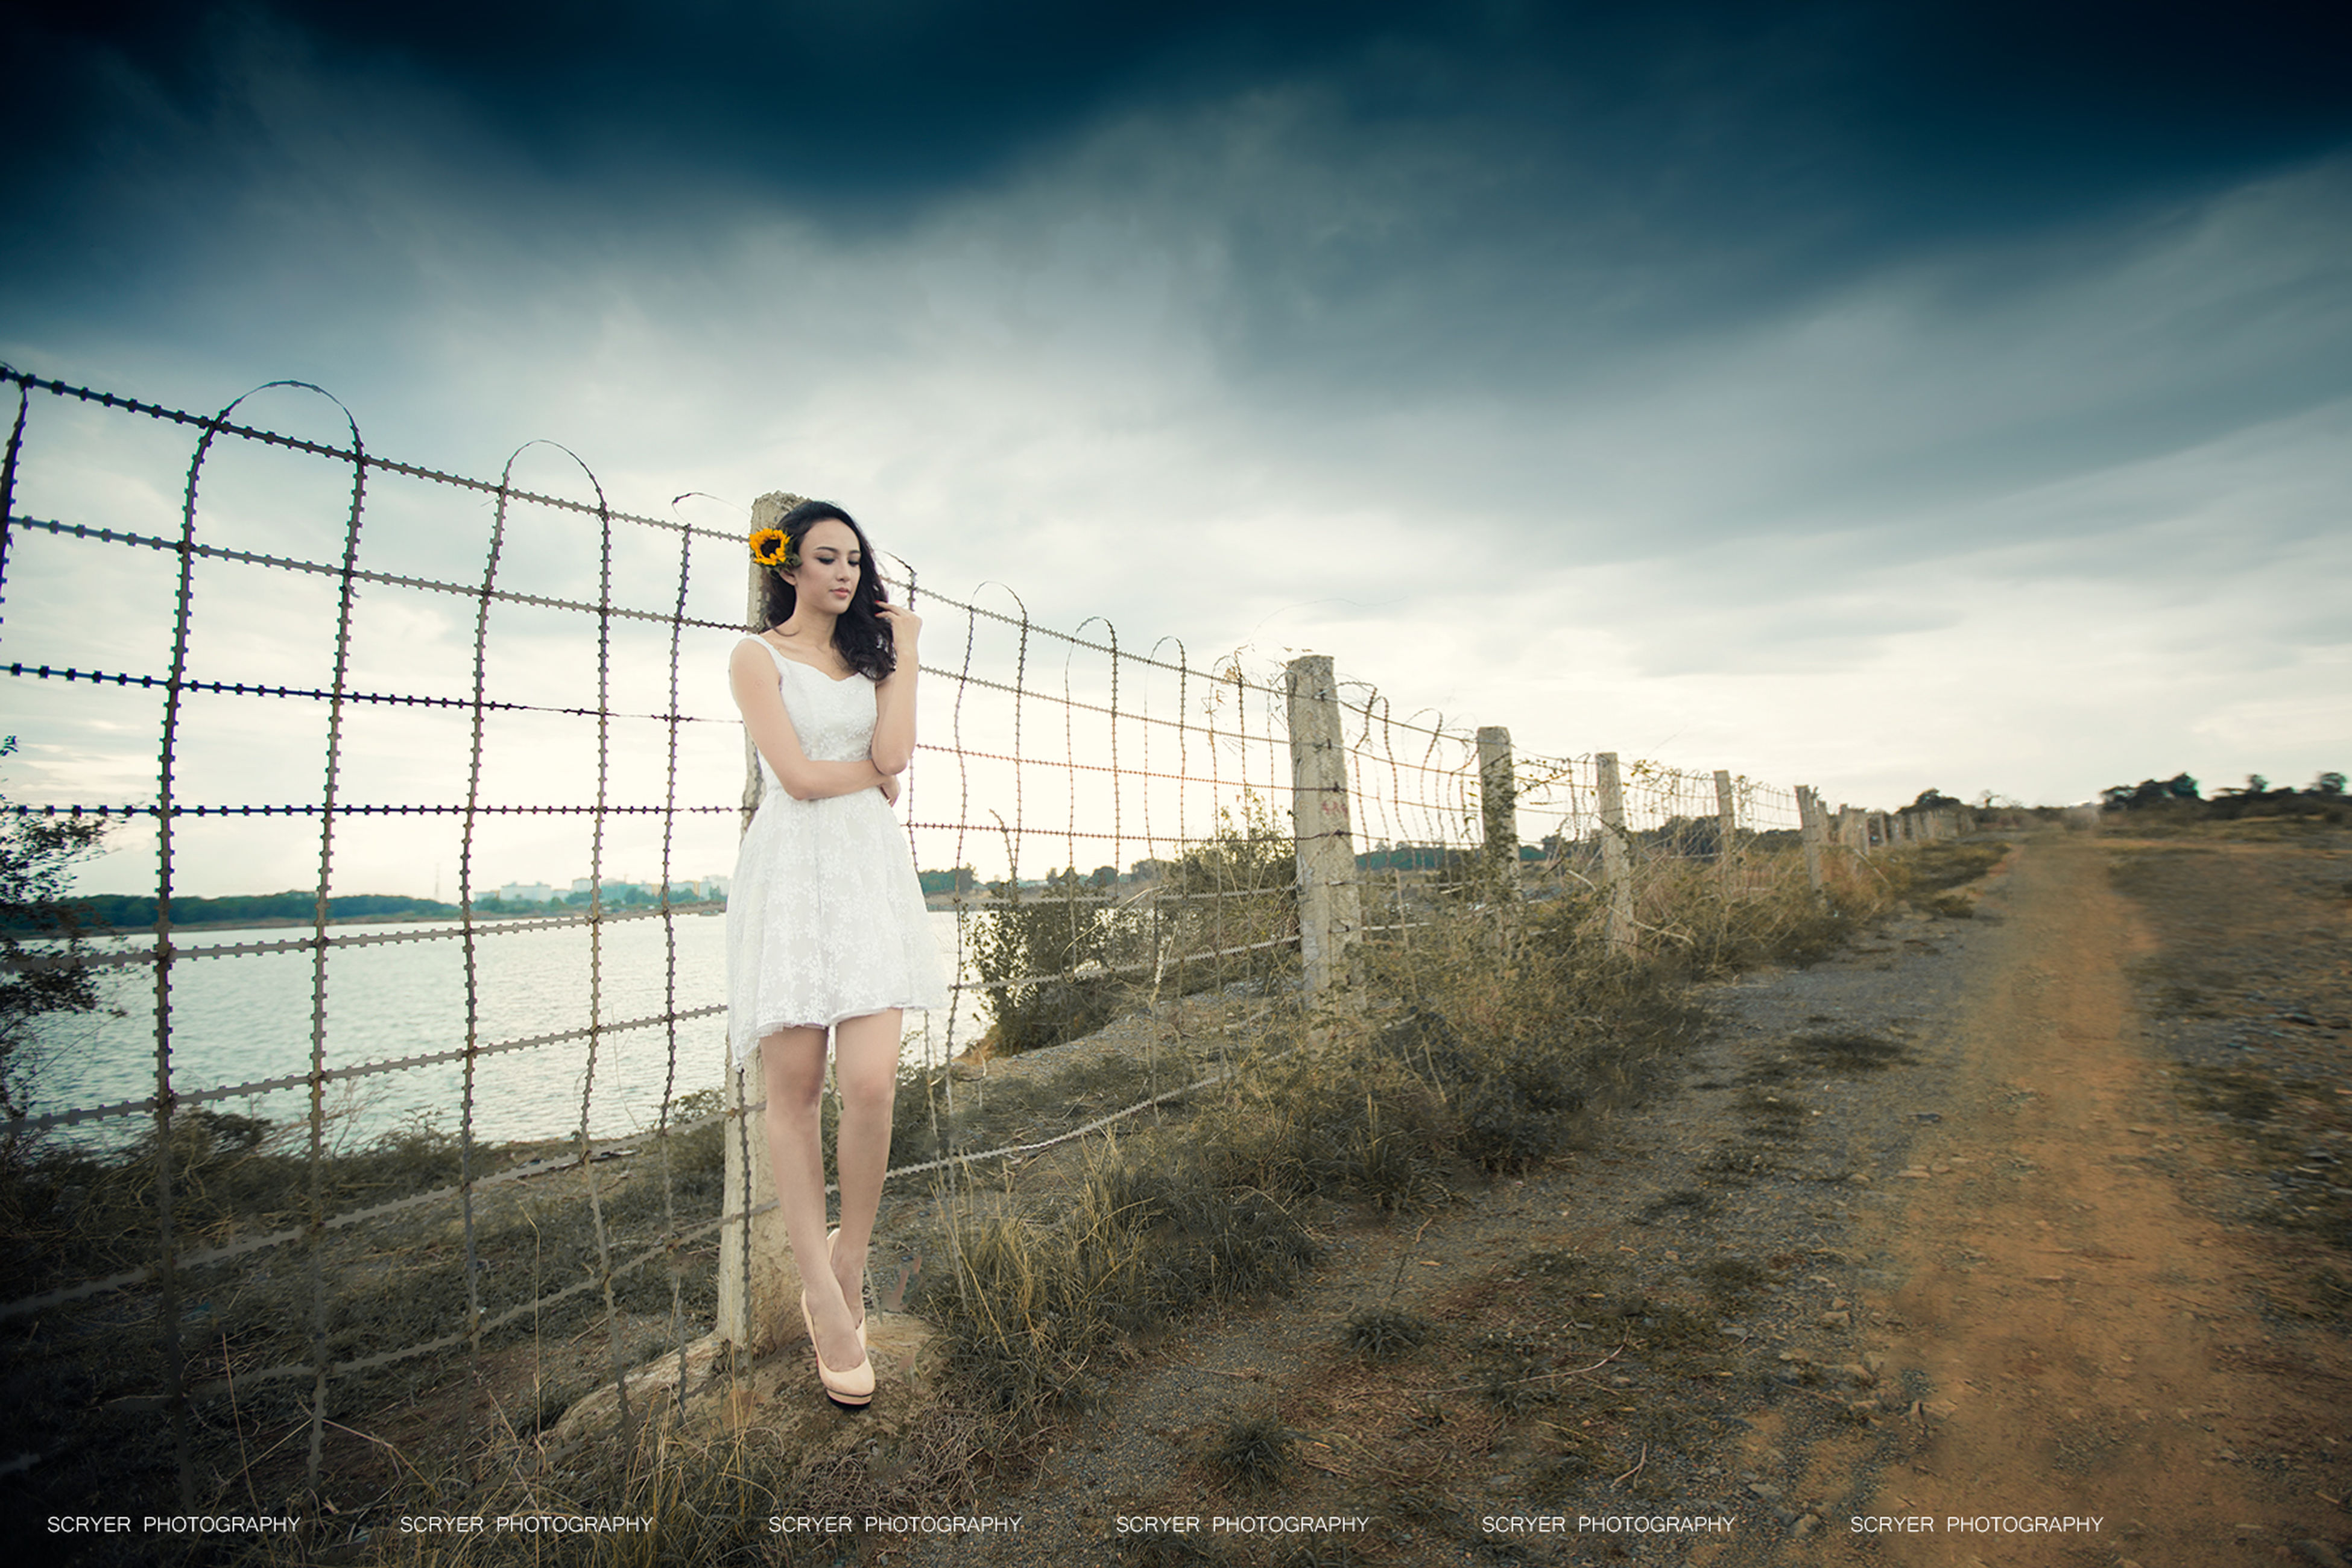 full length, sky, lifestyles, standing, casual clothing, leisure activity, childhood, fence, field, elementary age, person, boys, front view, protection, safety, cloud - sky, grass, day